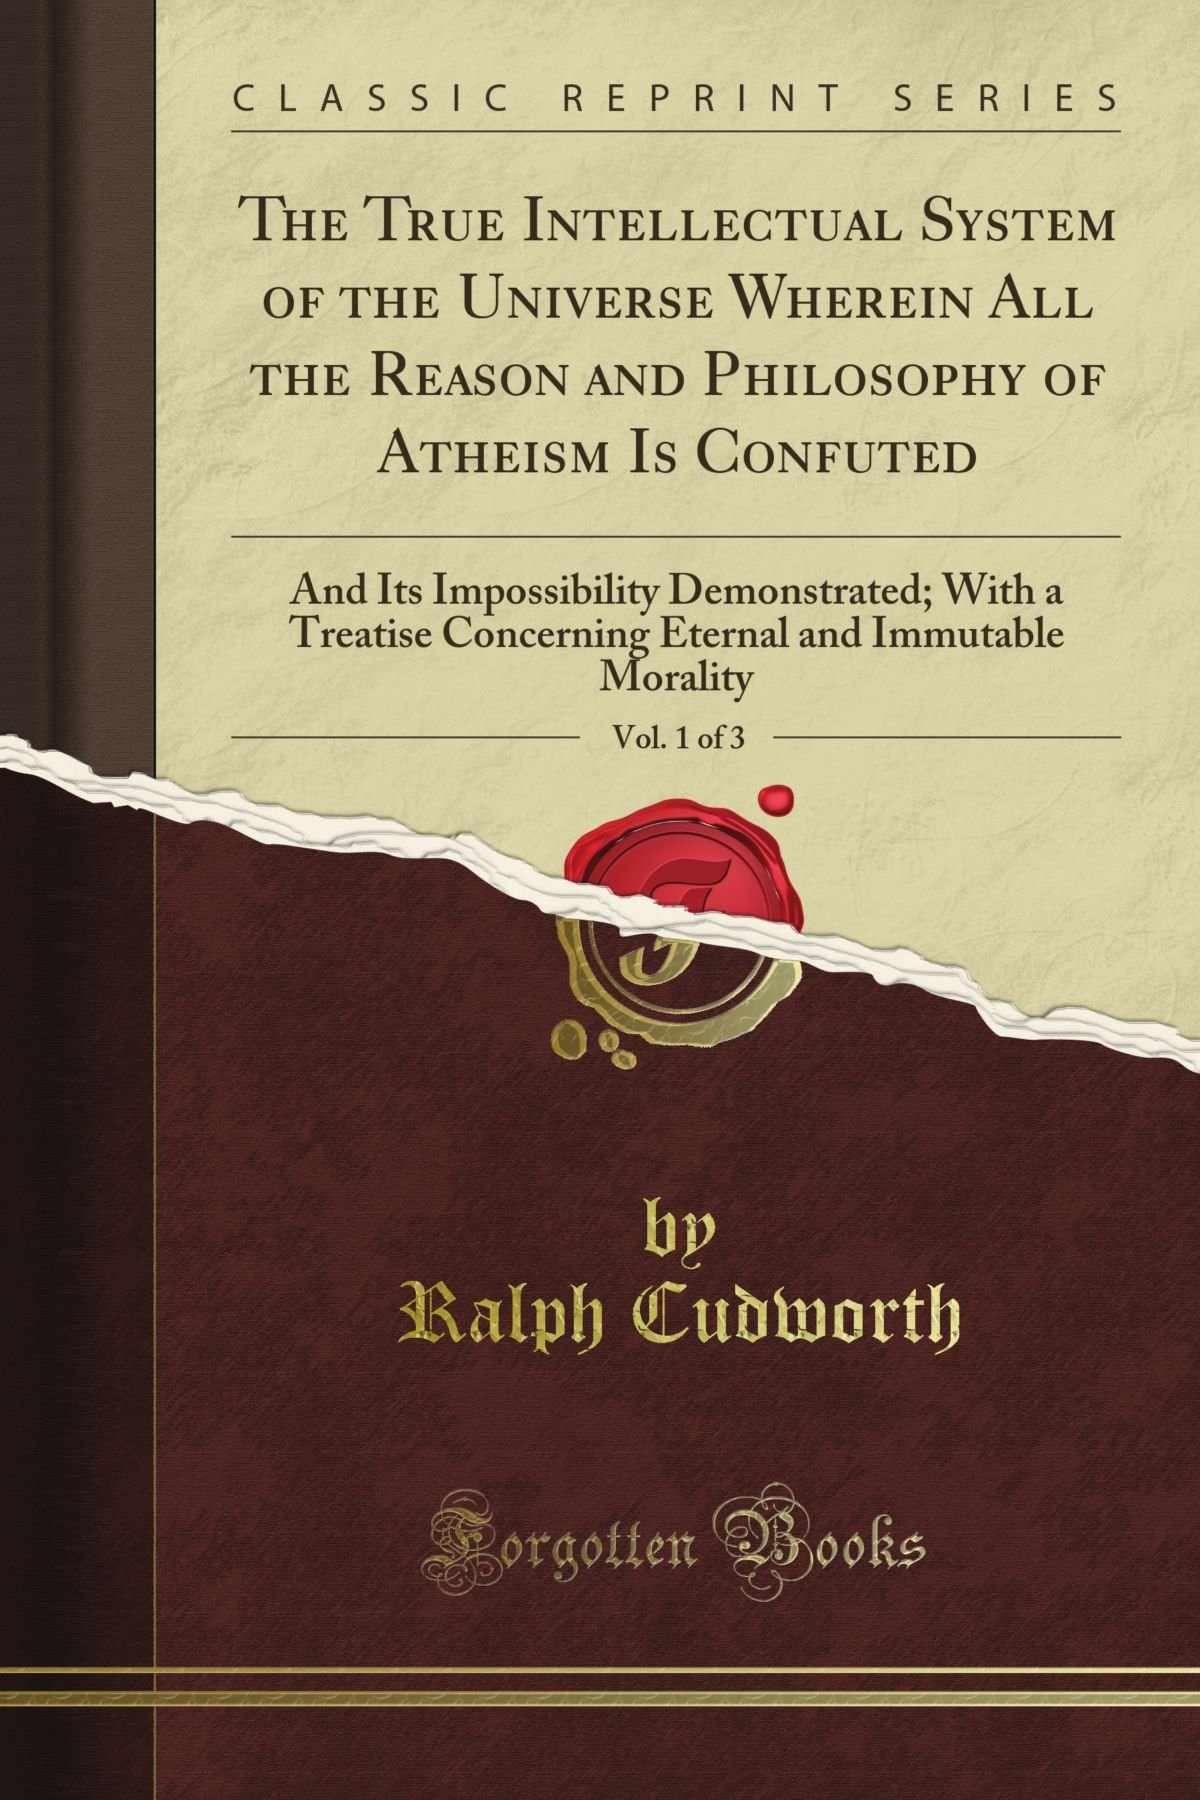 Download The True Intellectual System of the Universe Wherein All the Reason and Philosophy of Atheism Is Confuted: And Its Impossibility Demonstrated; With a ... Morality, Vol. 1 of 3 (Classic Reprint) pdf